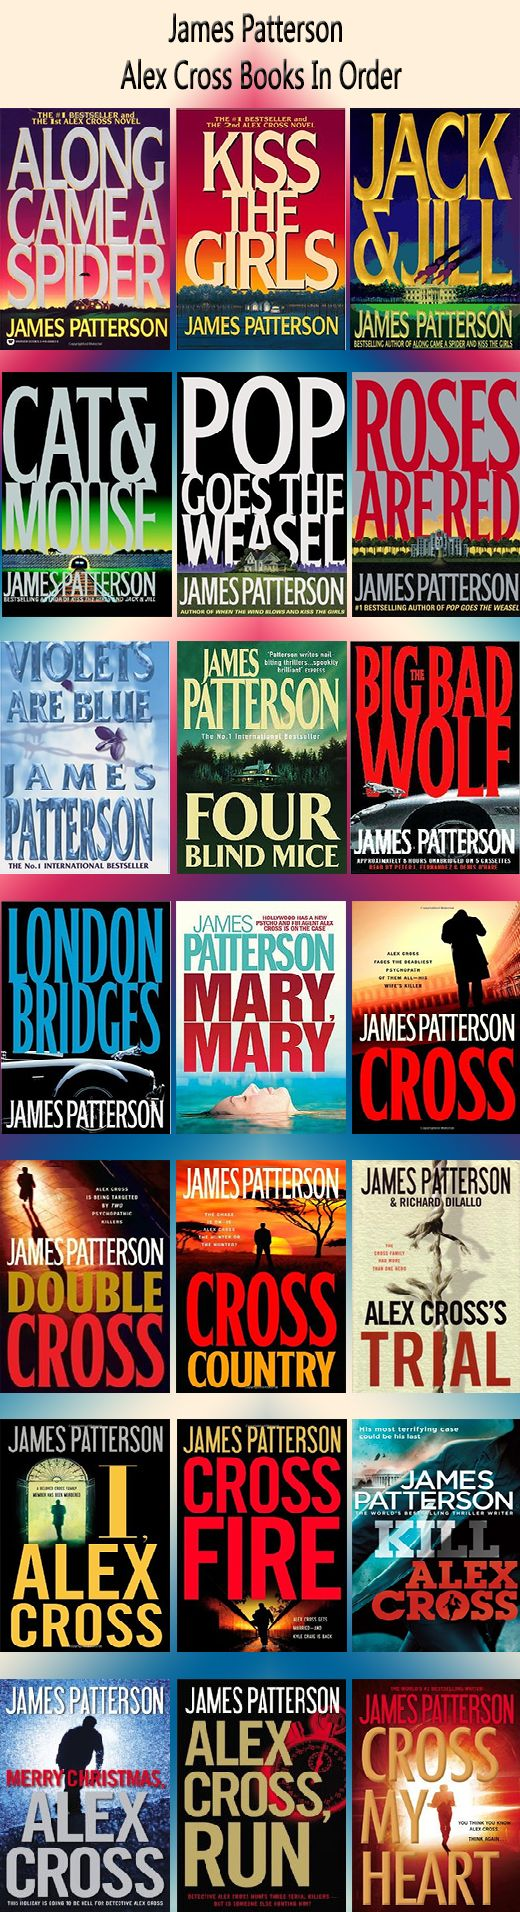 Alex Cross books in order by James Patterson http://mysterysequels.com/james-patterson-alex-cross-books-in-order